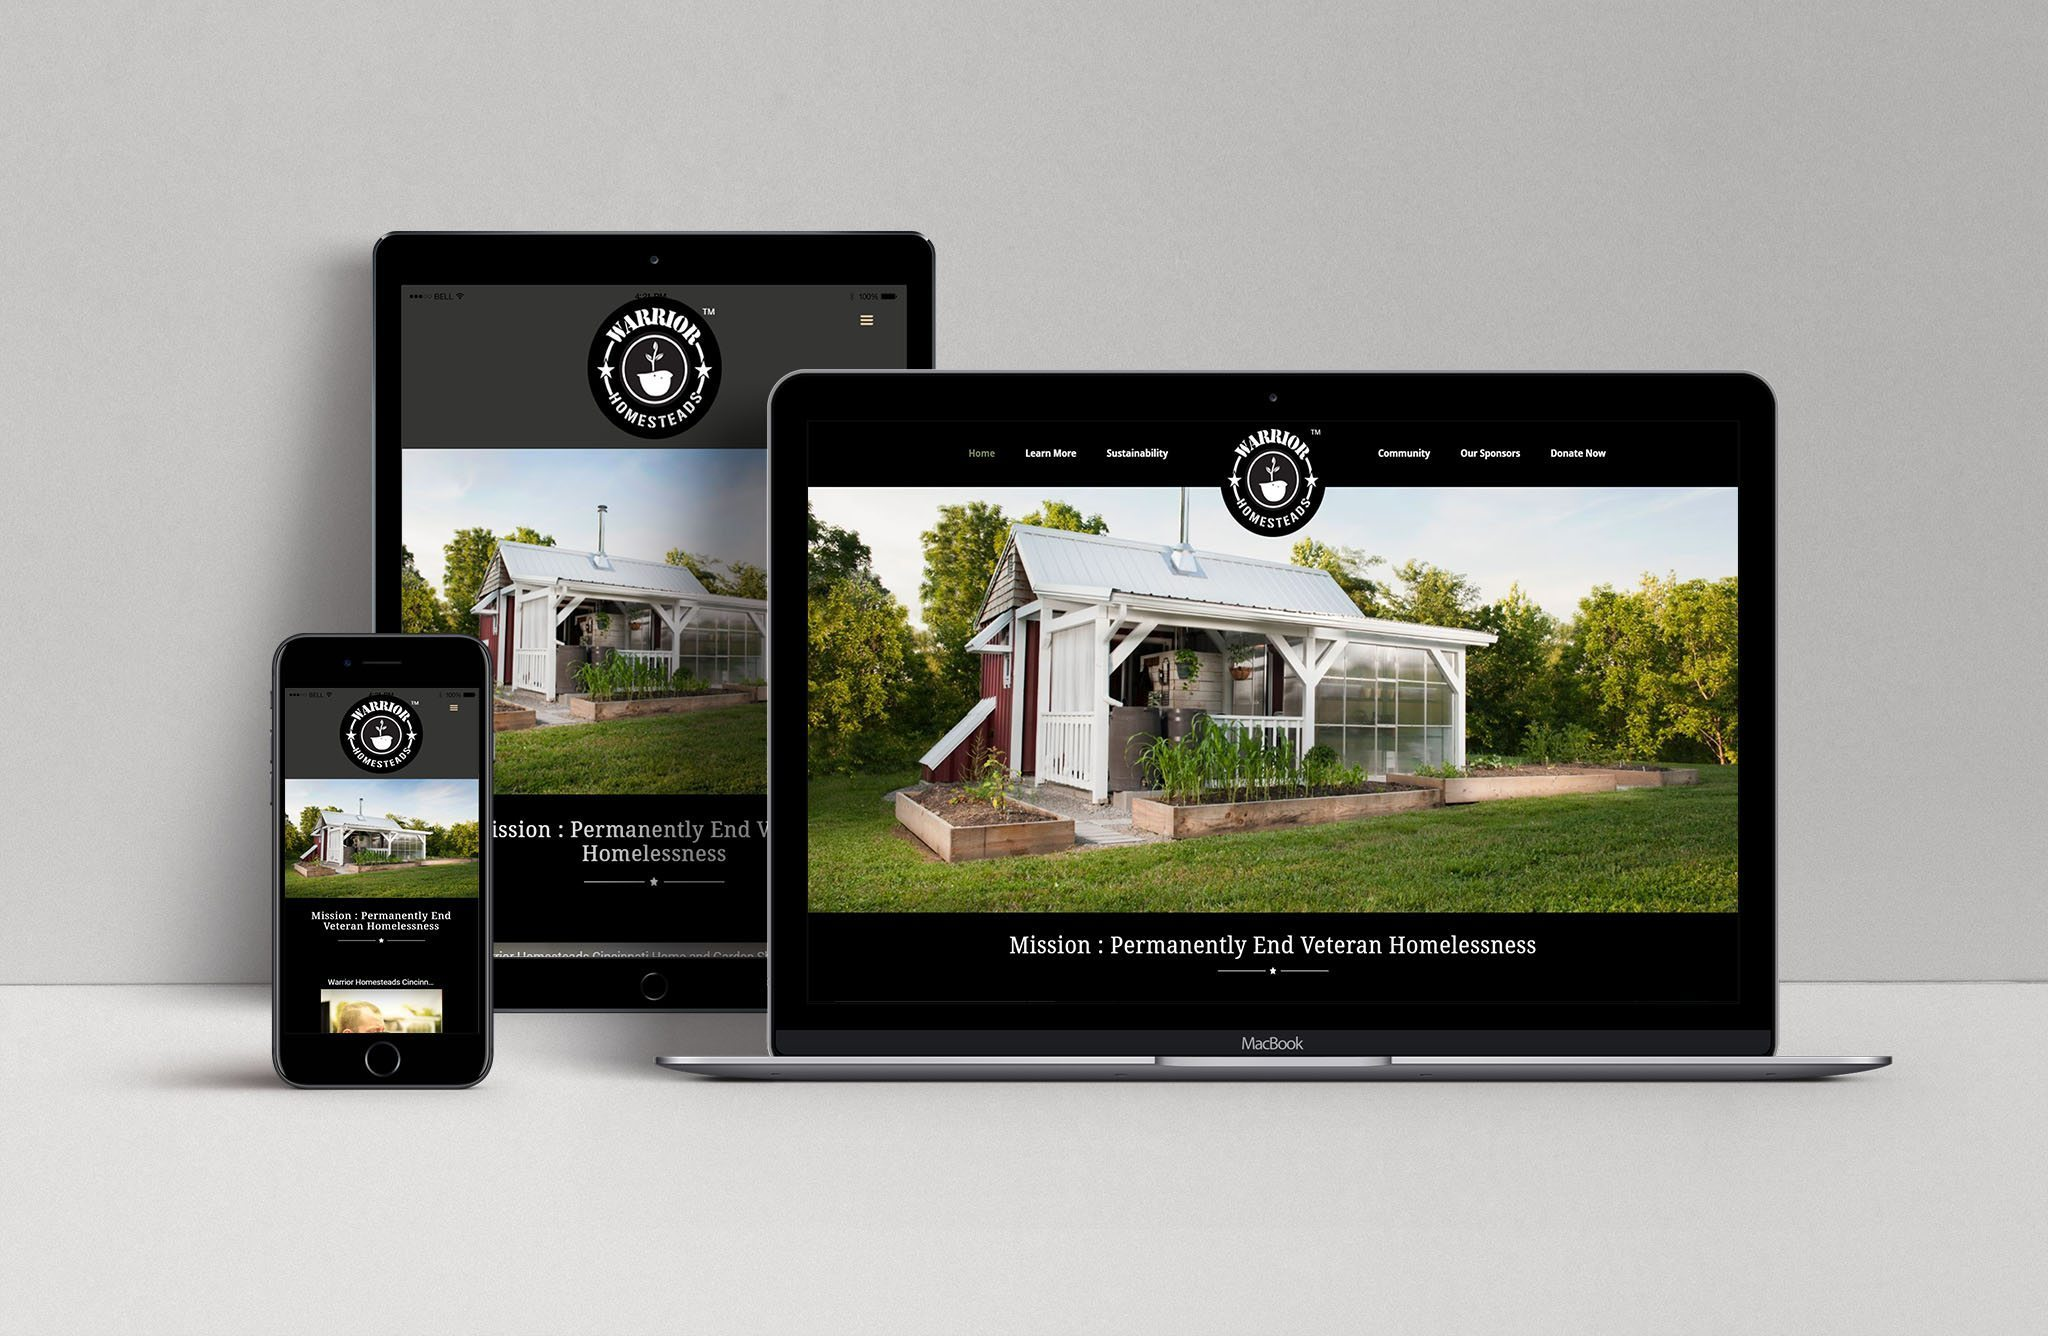 A showcase of the Warrior Homestead site's responsive design